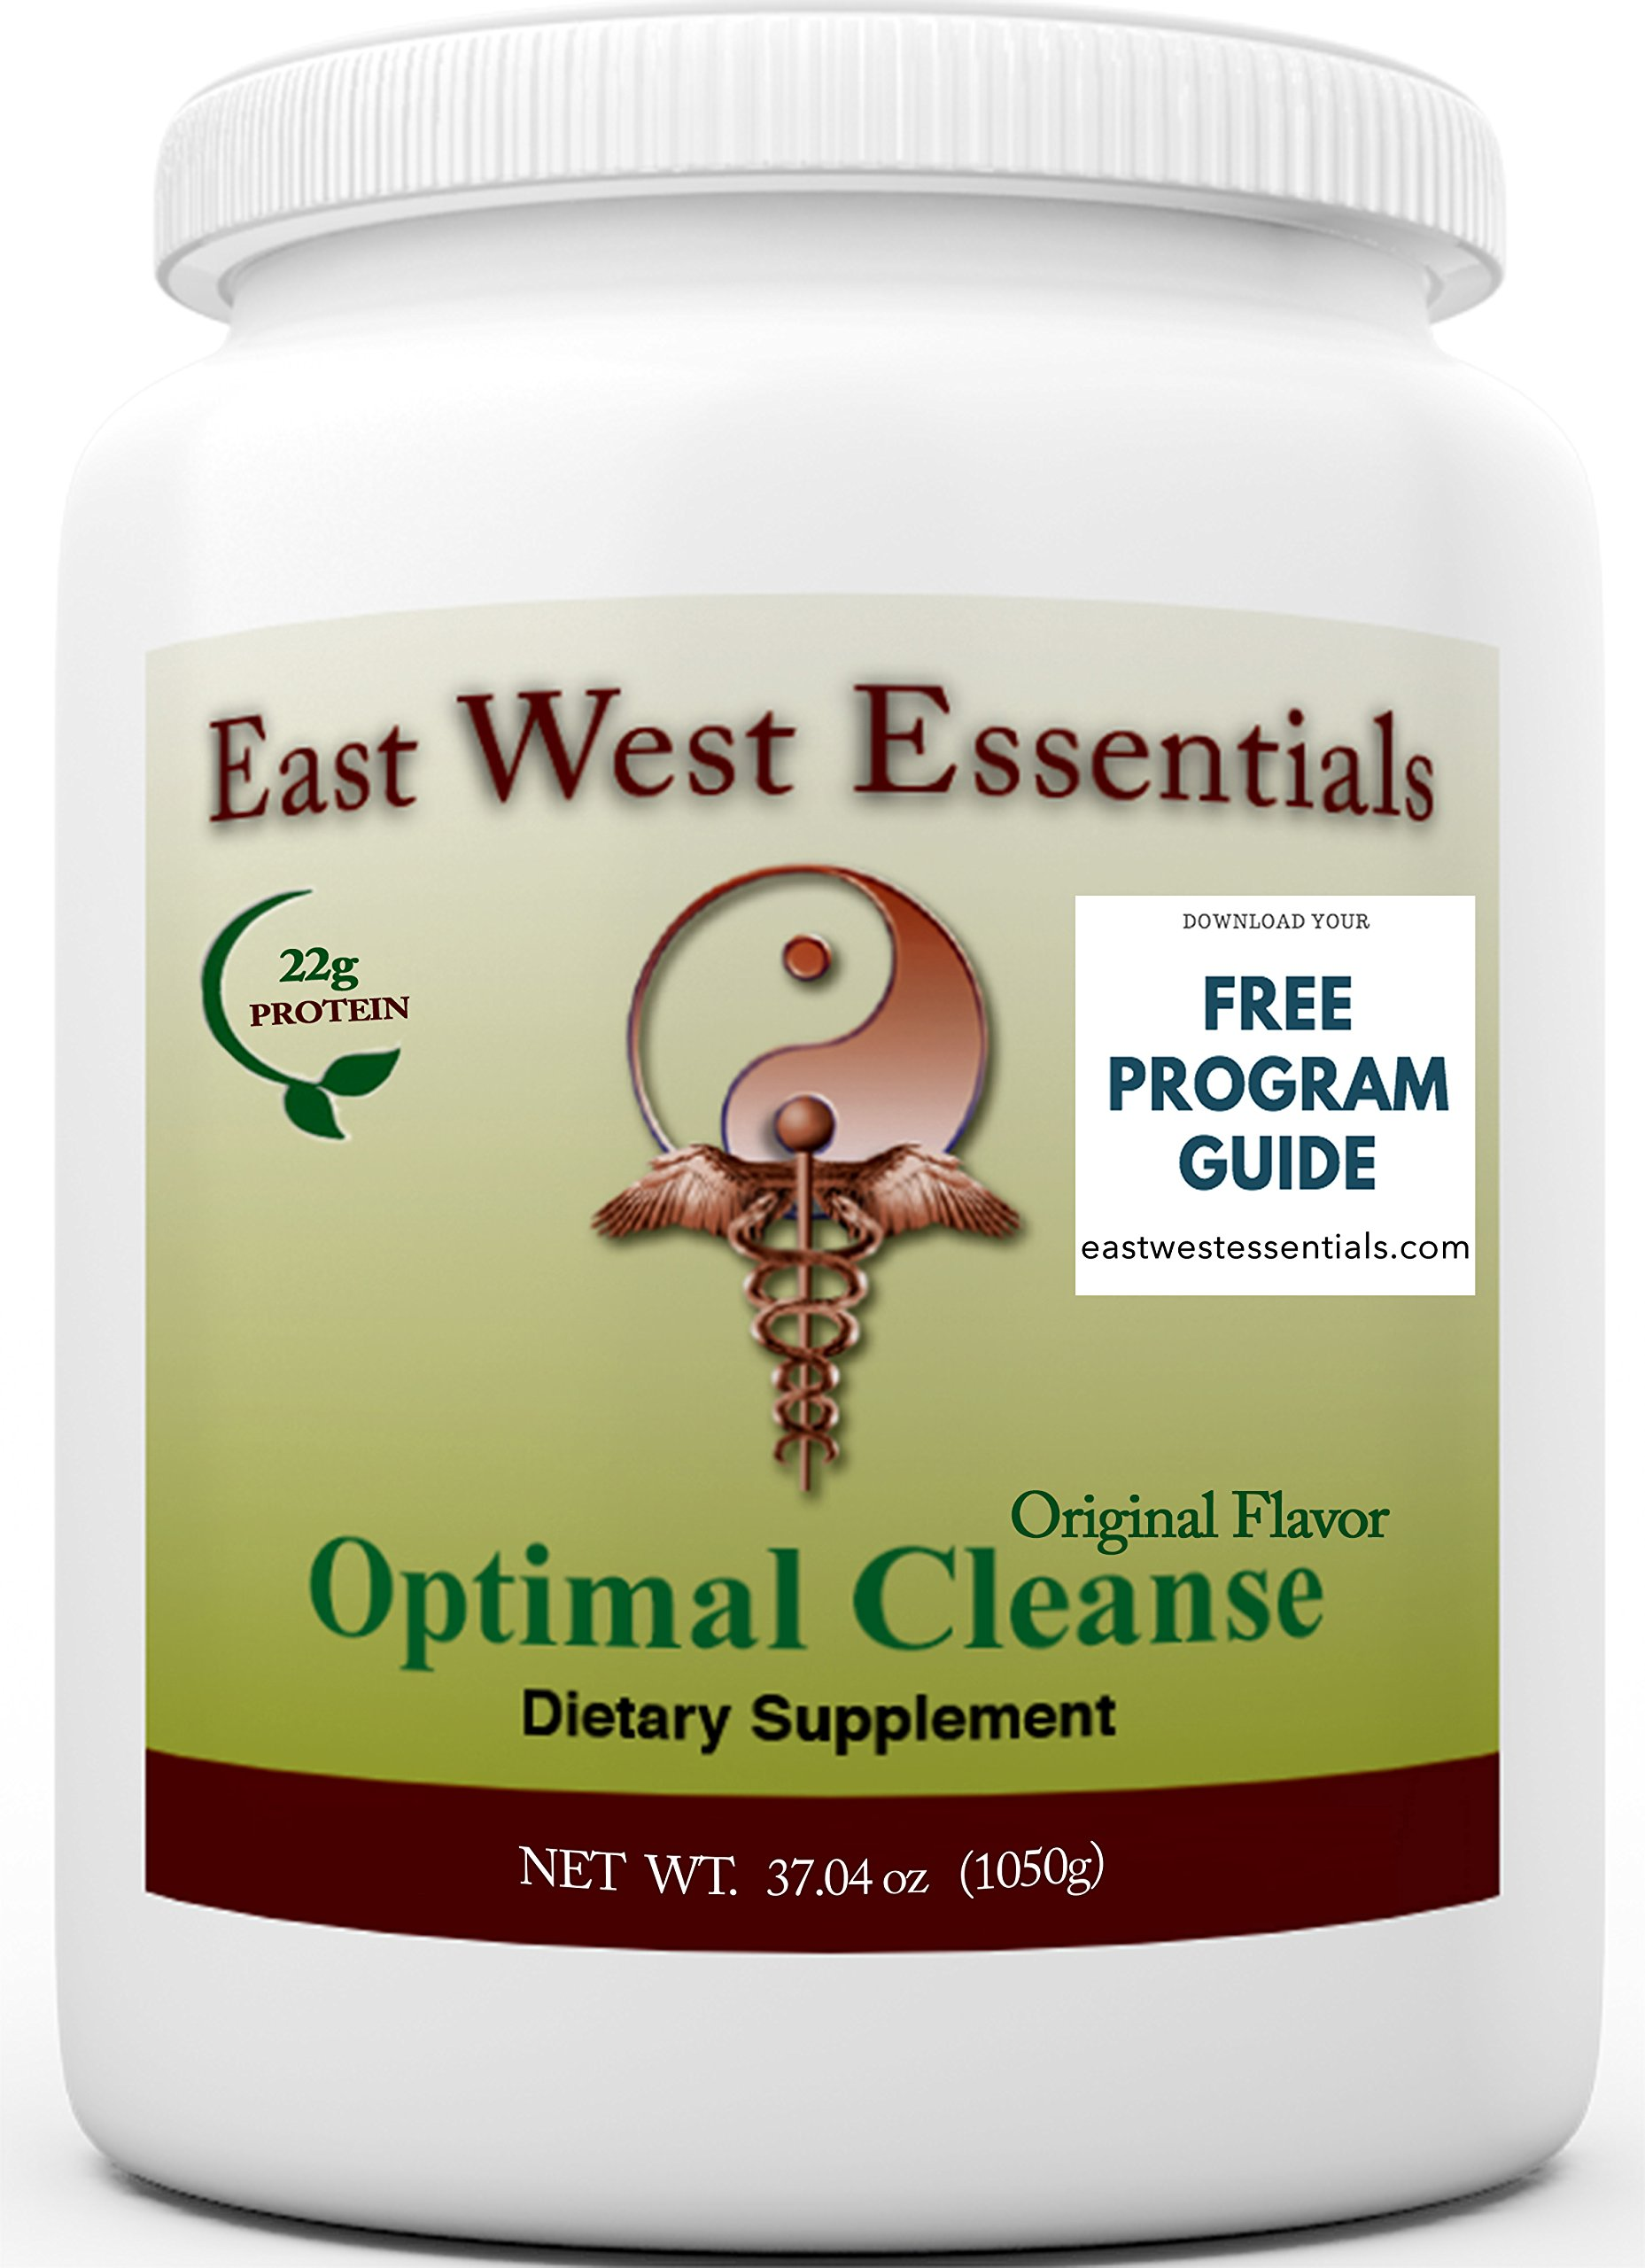 Optimal Cleanse - Original by East West Essentials - Helps Eliminate Toxins From The Liver And Fat Cells - Aids In Weight Loss - Can Be Used As A Meal Replacement - FREE PDF Program Guide